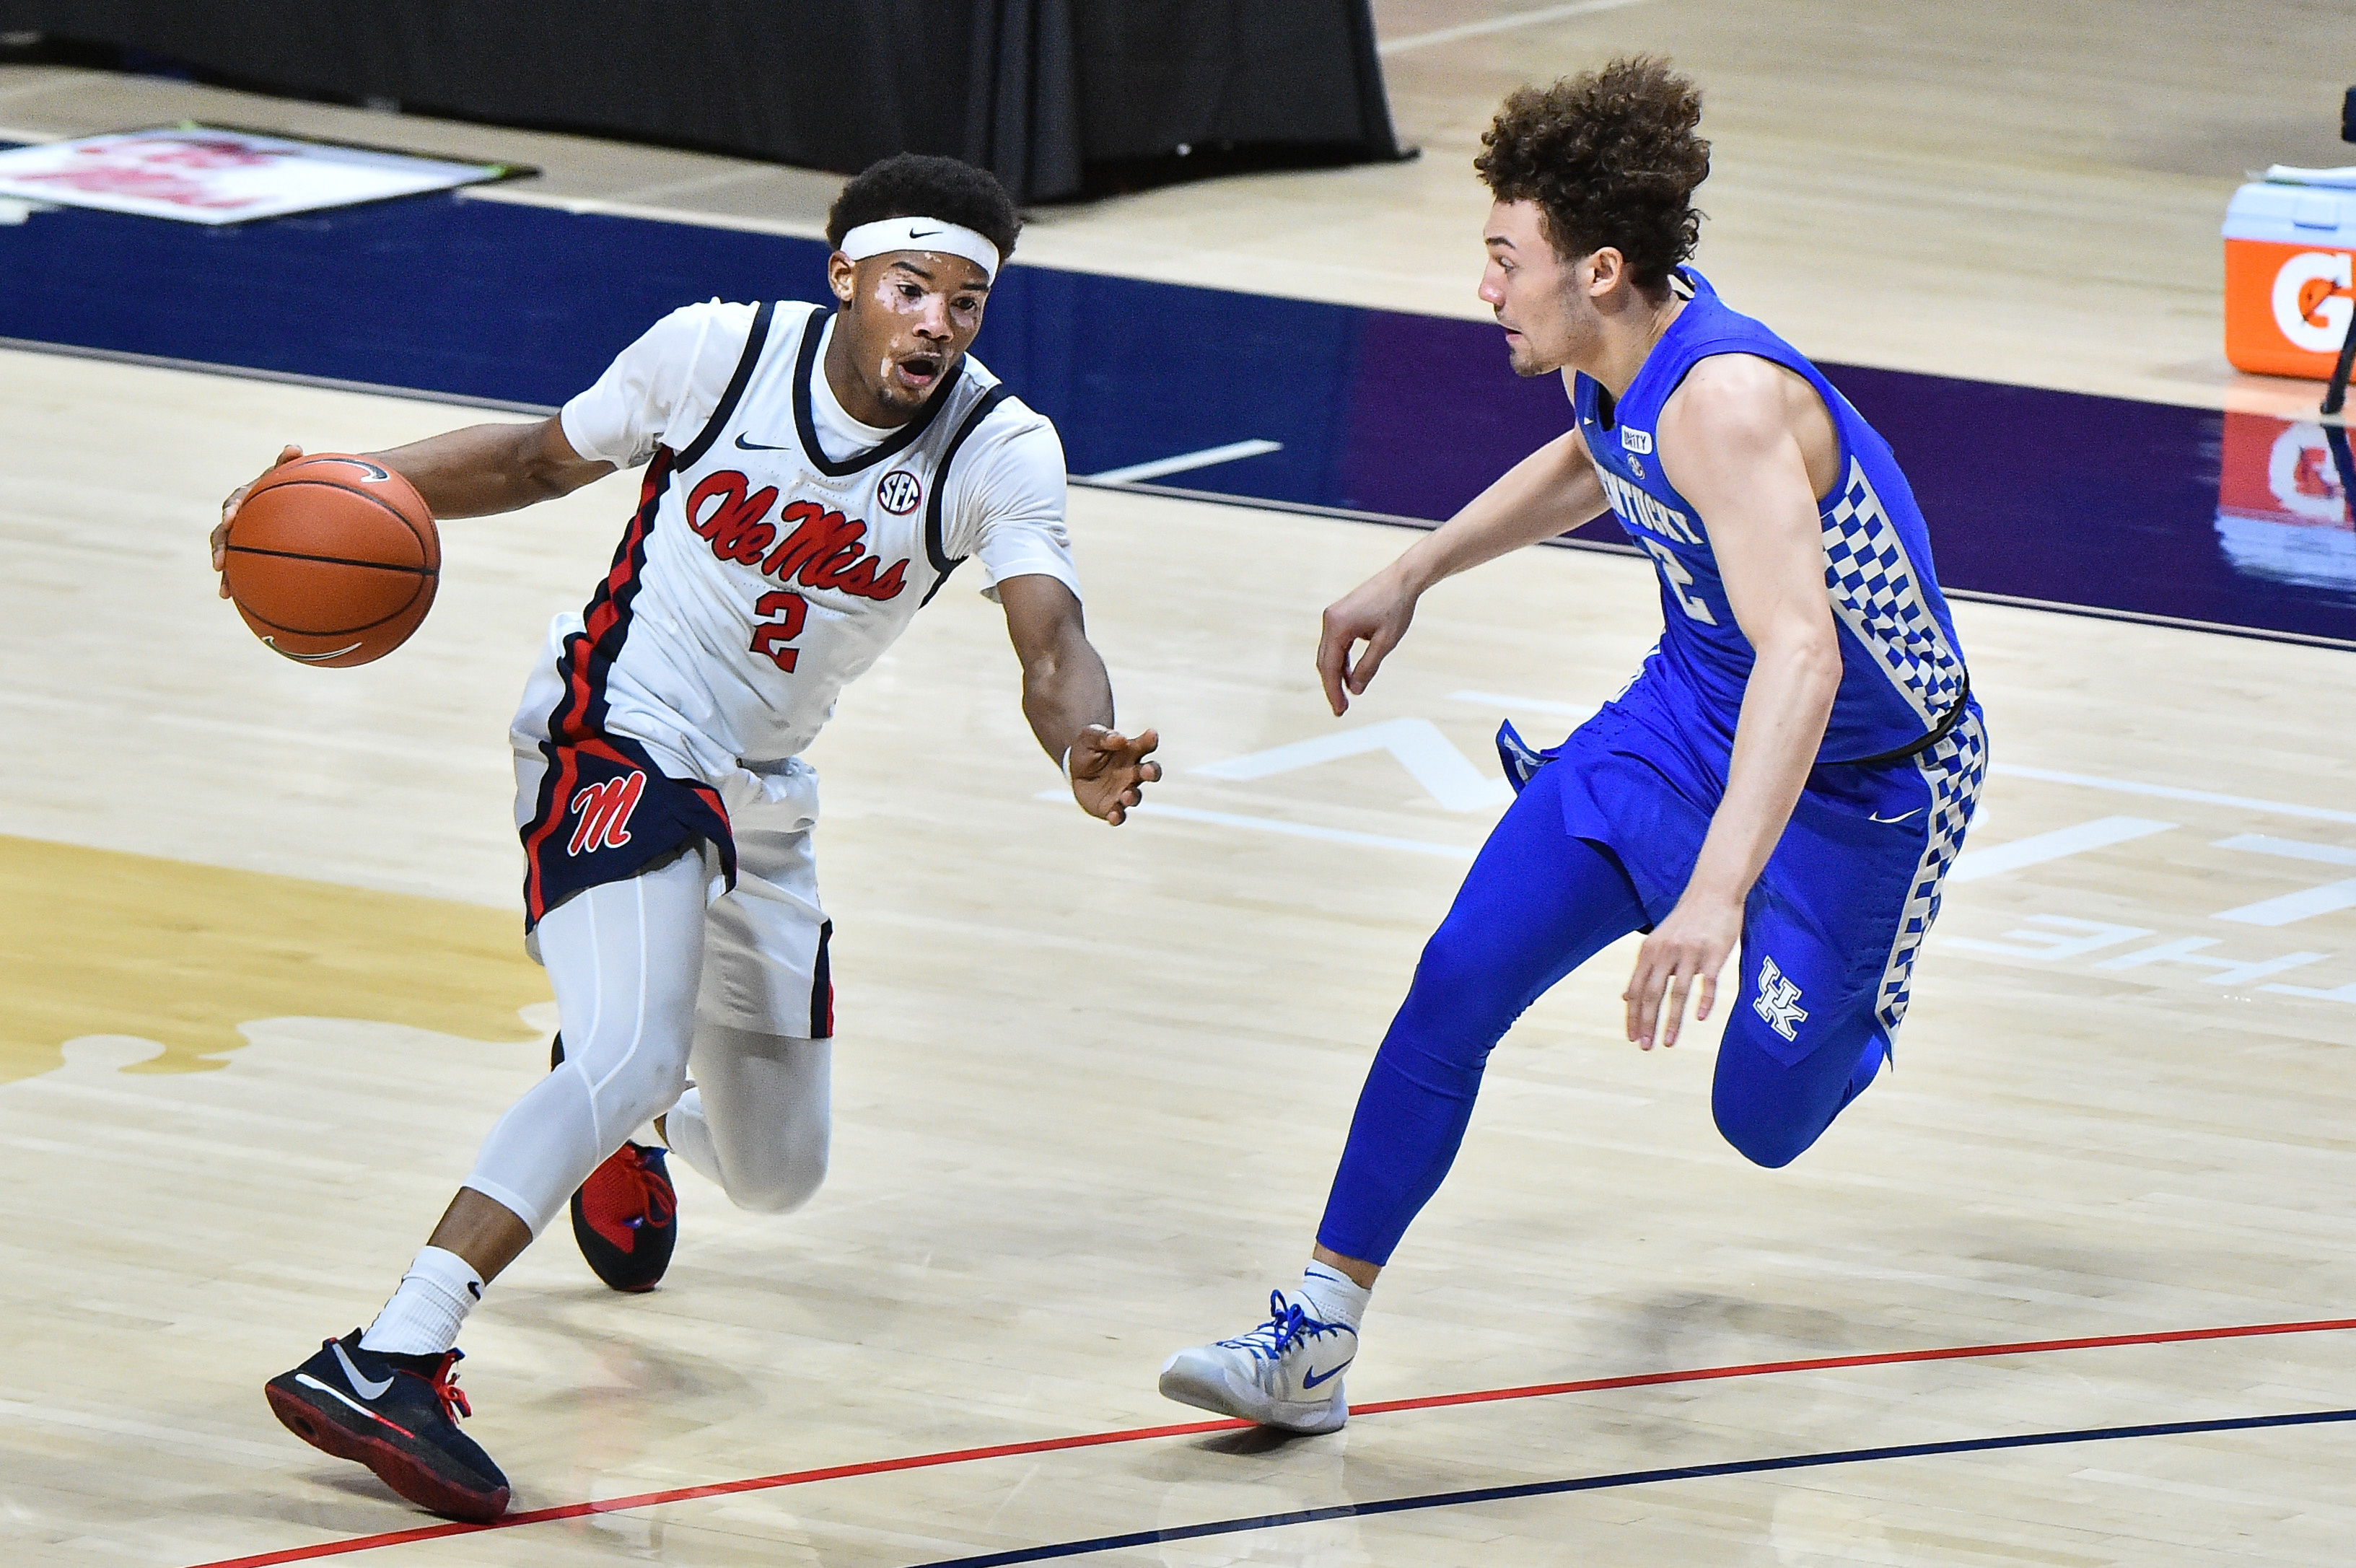 Mississippi Rebels guard Devontae Shuler (2) handles the ball against Kentucky Wildcats guard Devin Askew (2) during the second half at The Pavilion at Ole Miss.